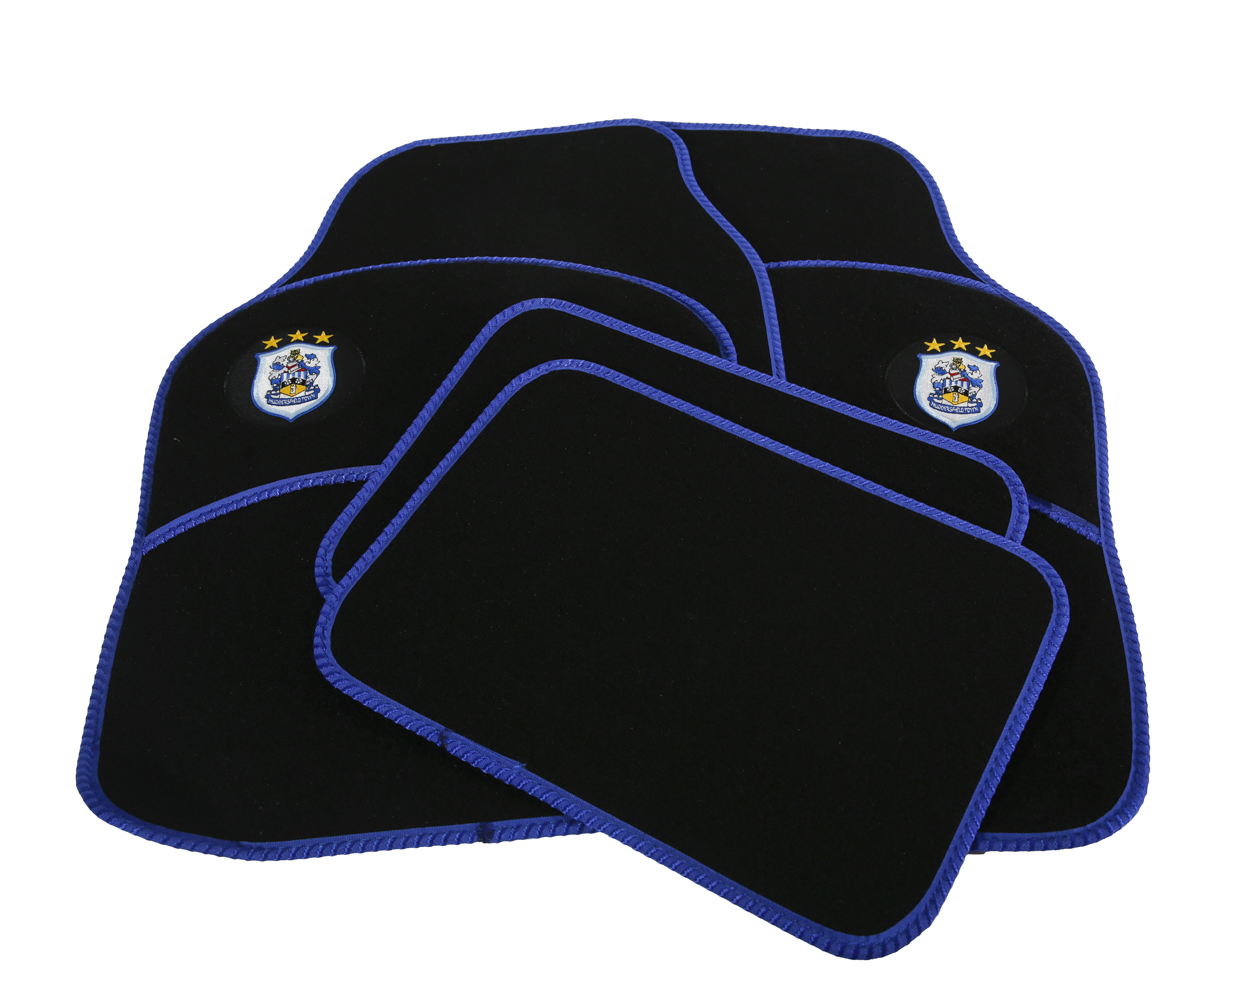 Car Mats Double With Crest